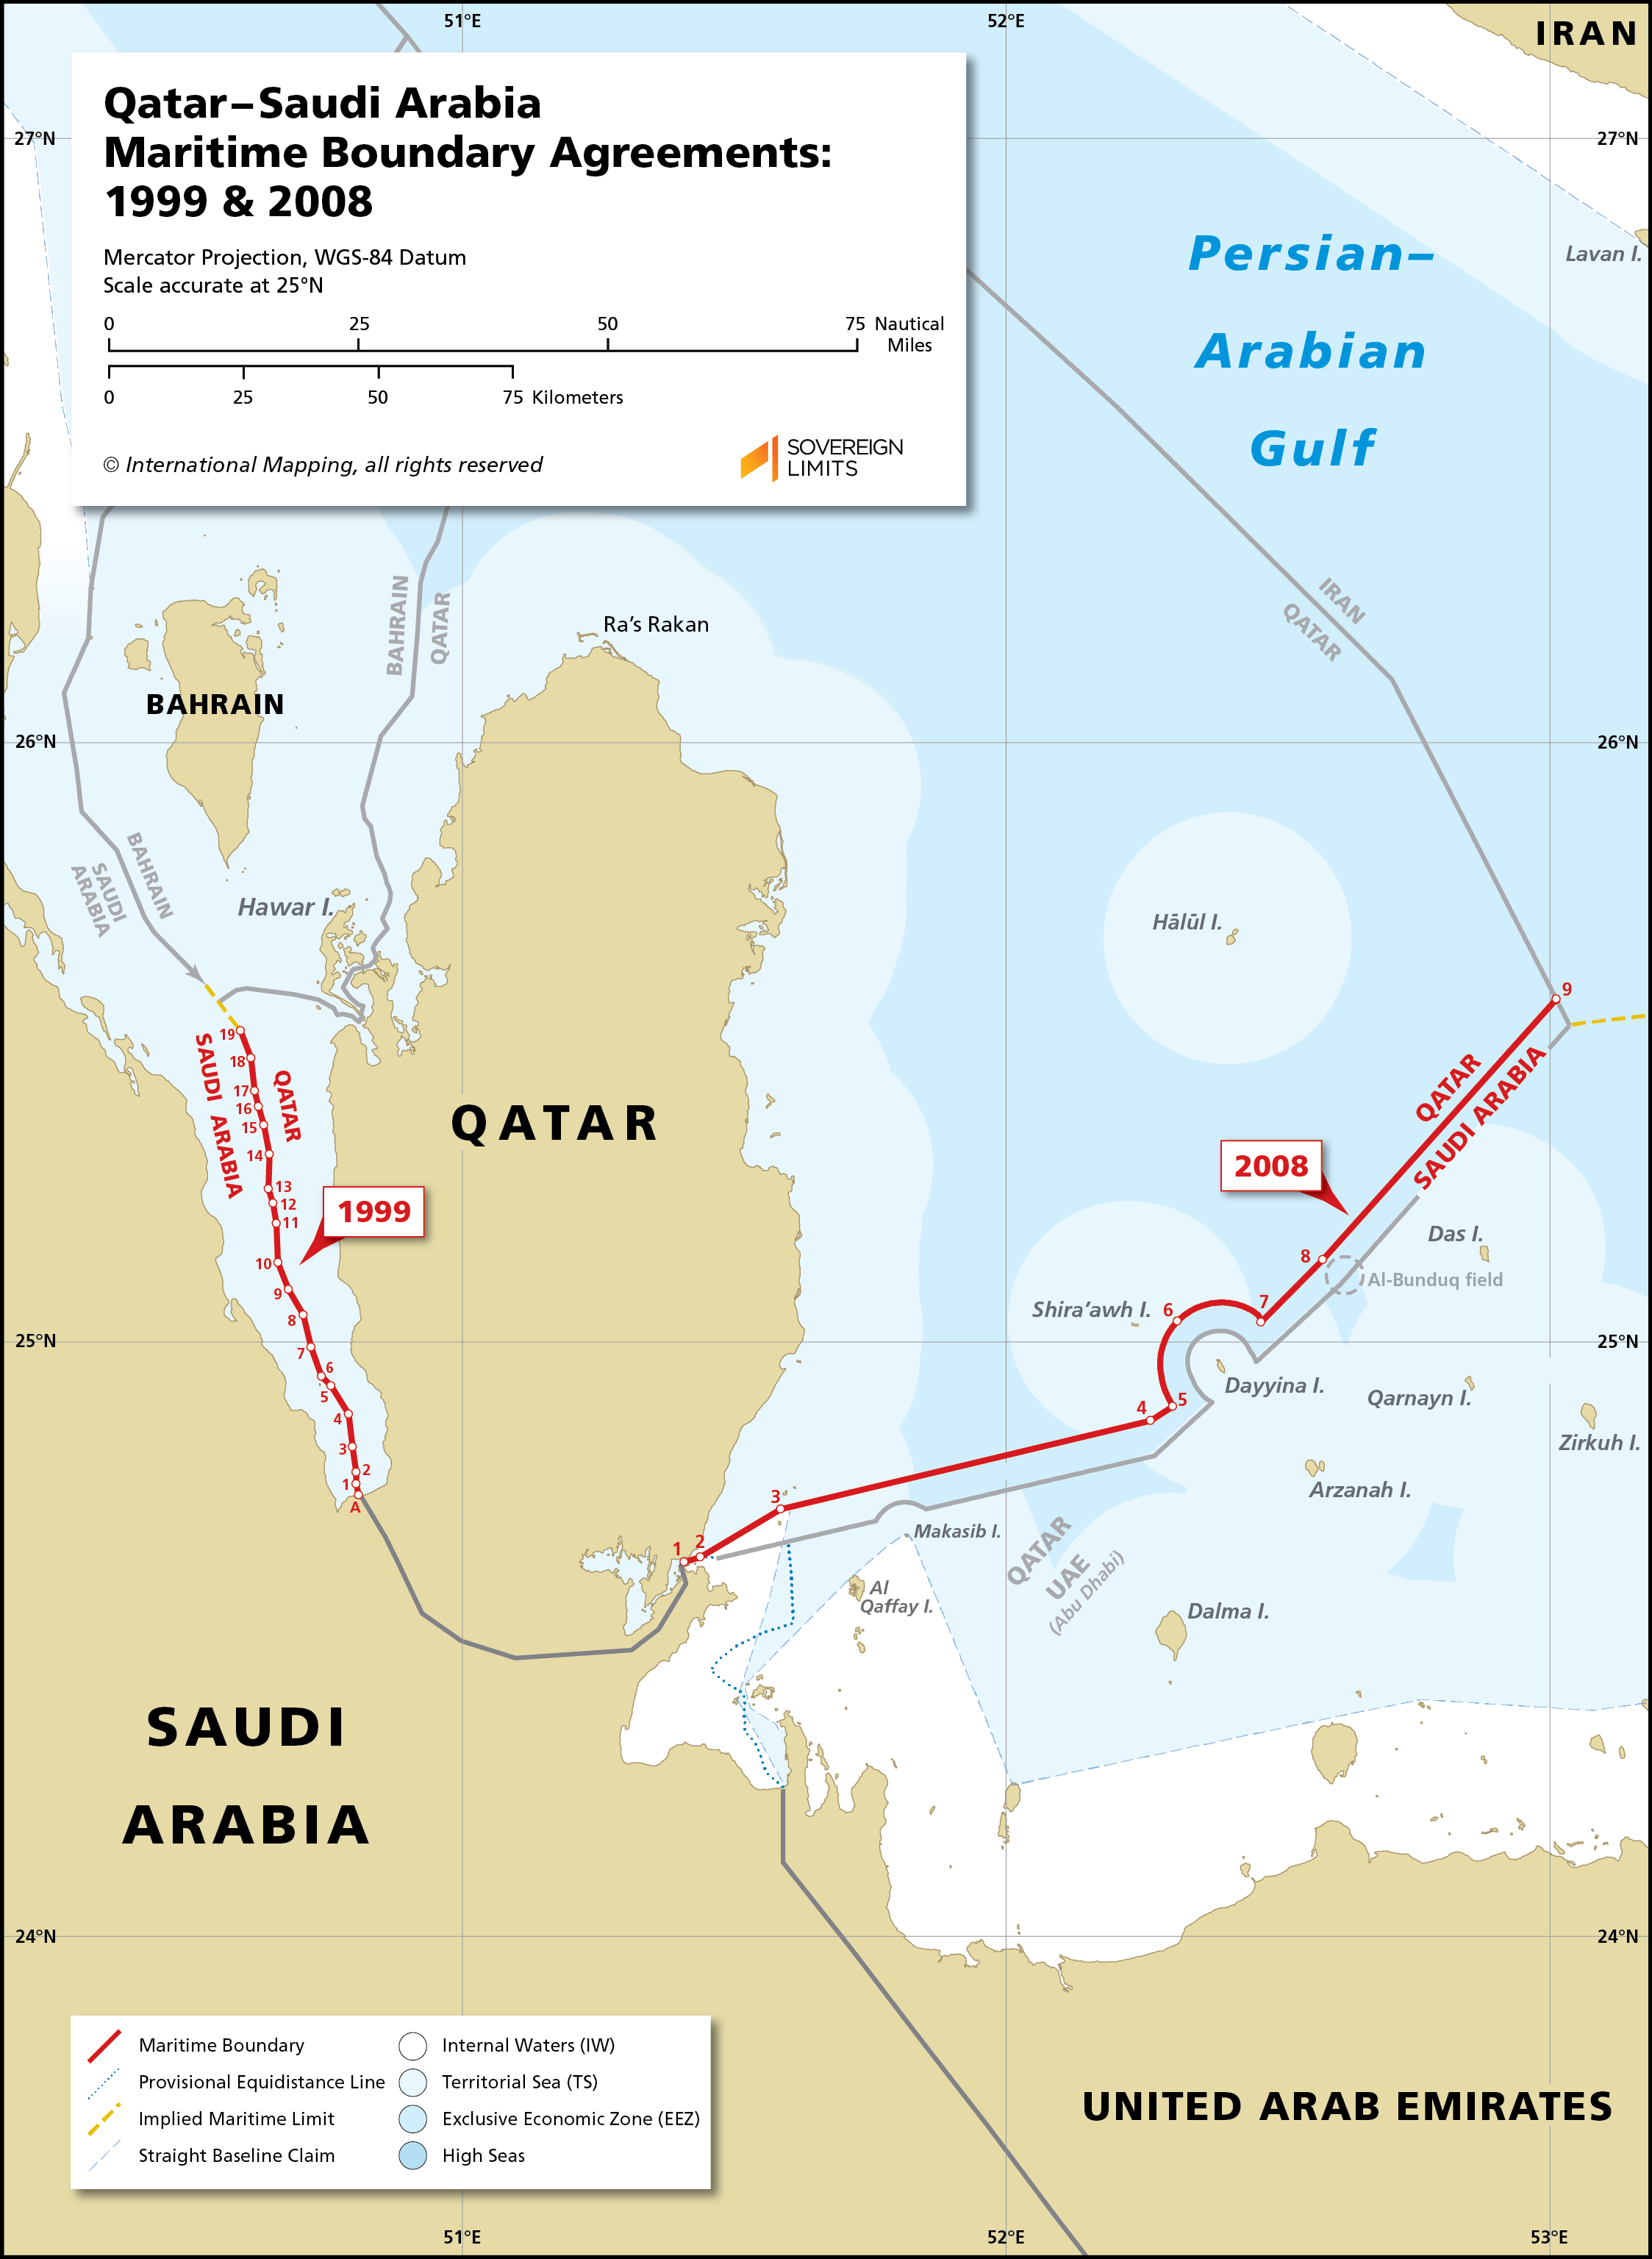 Map showing the maritime boundary between Qatar and Saudi Arabia